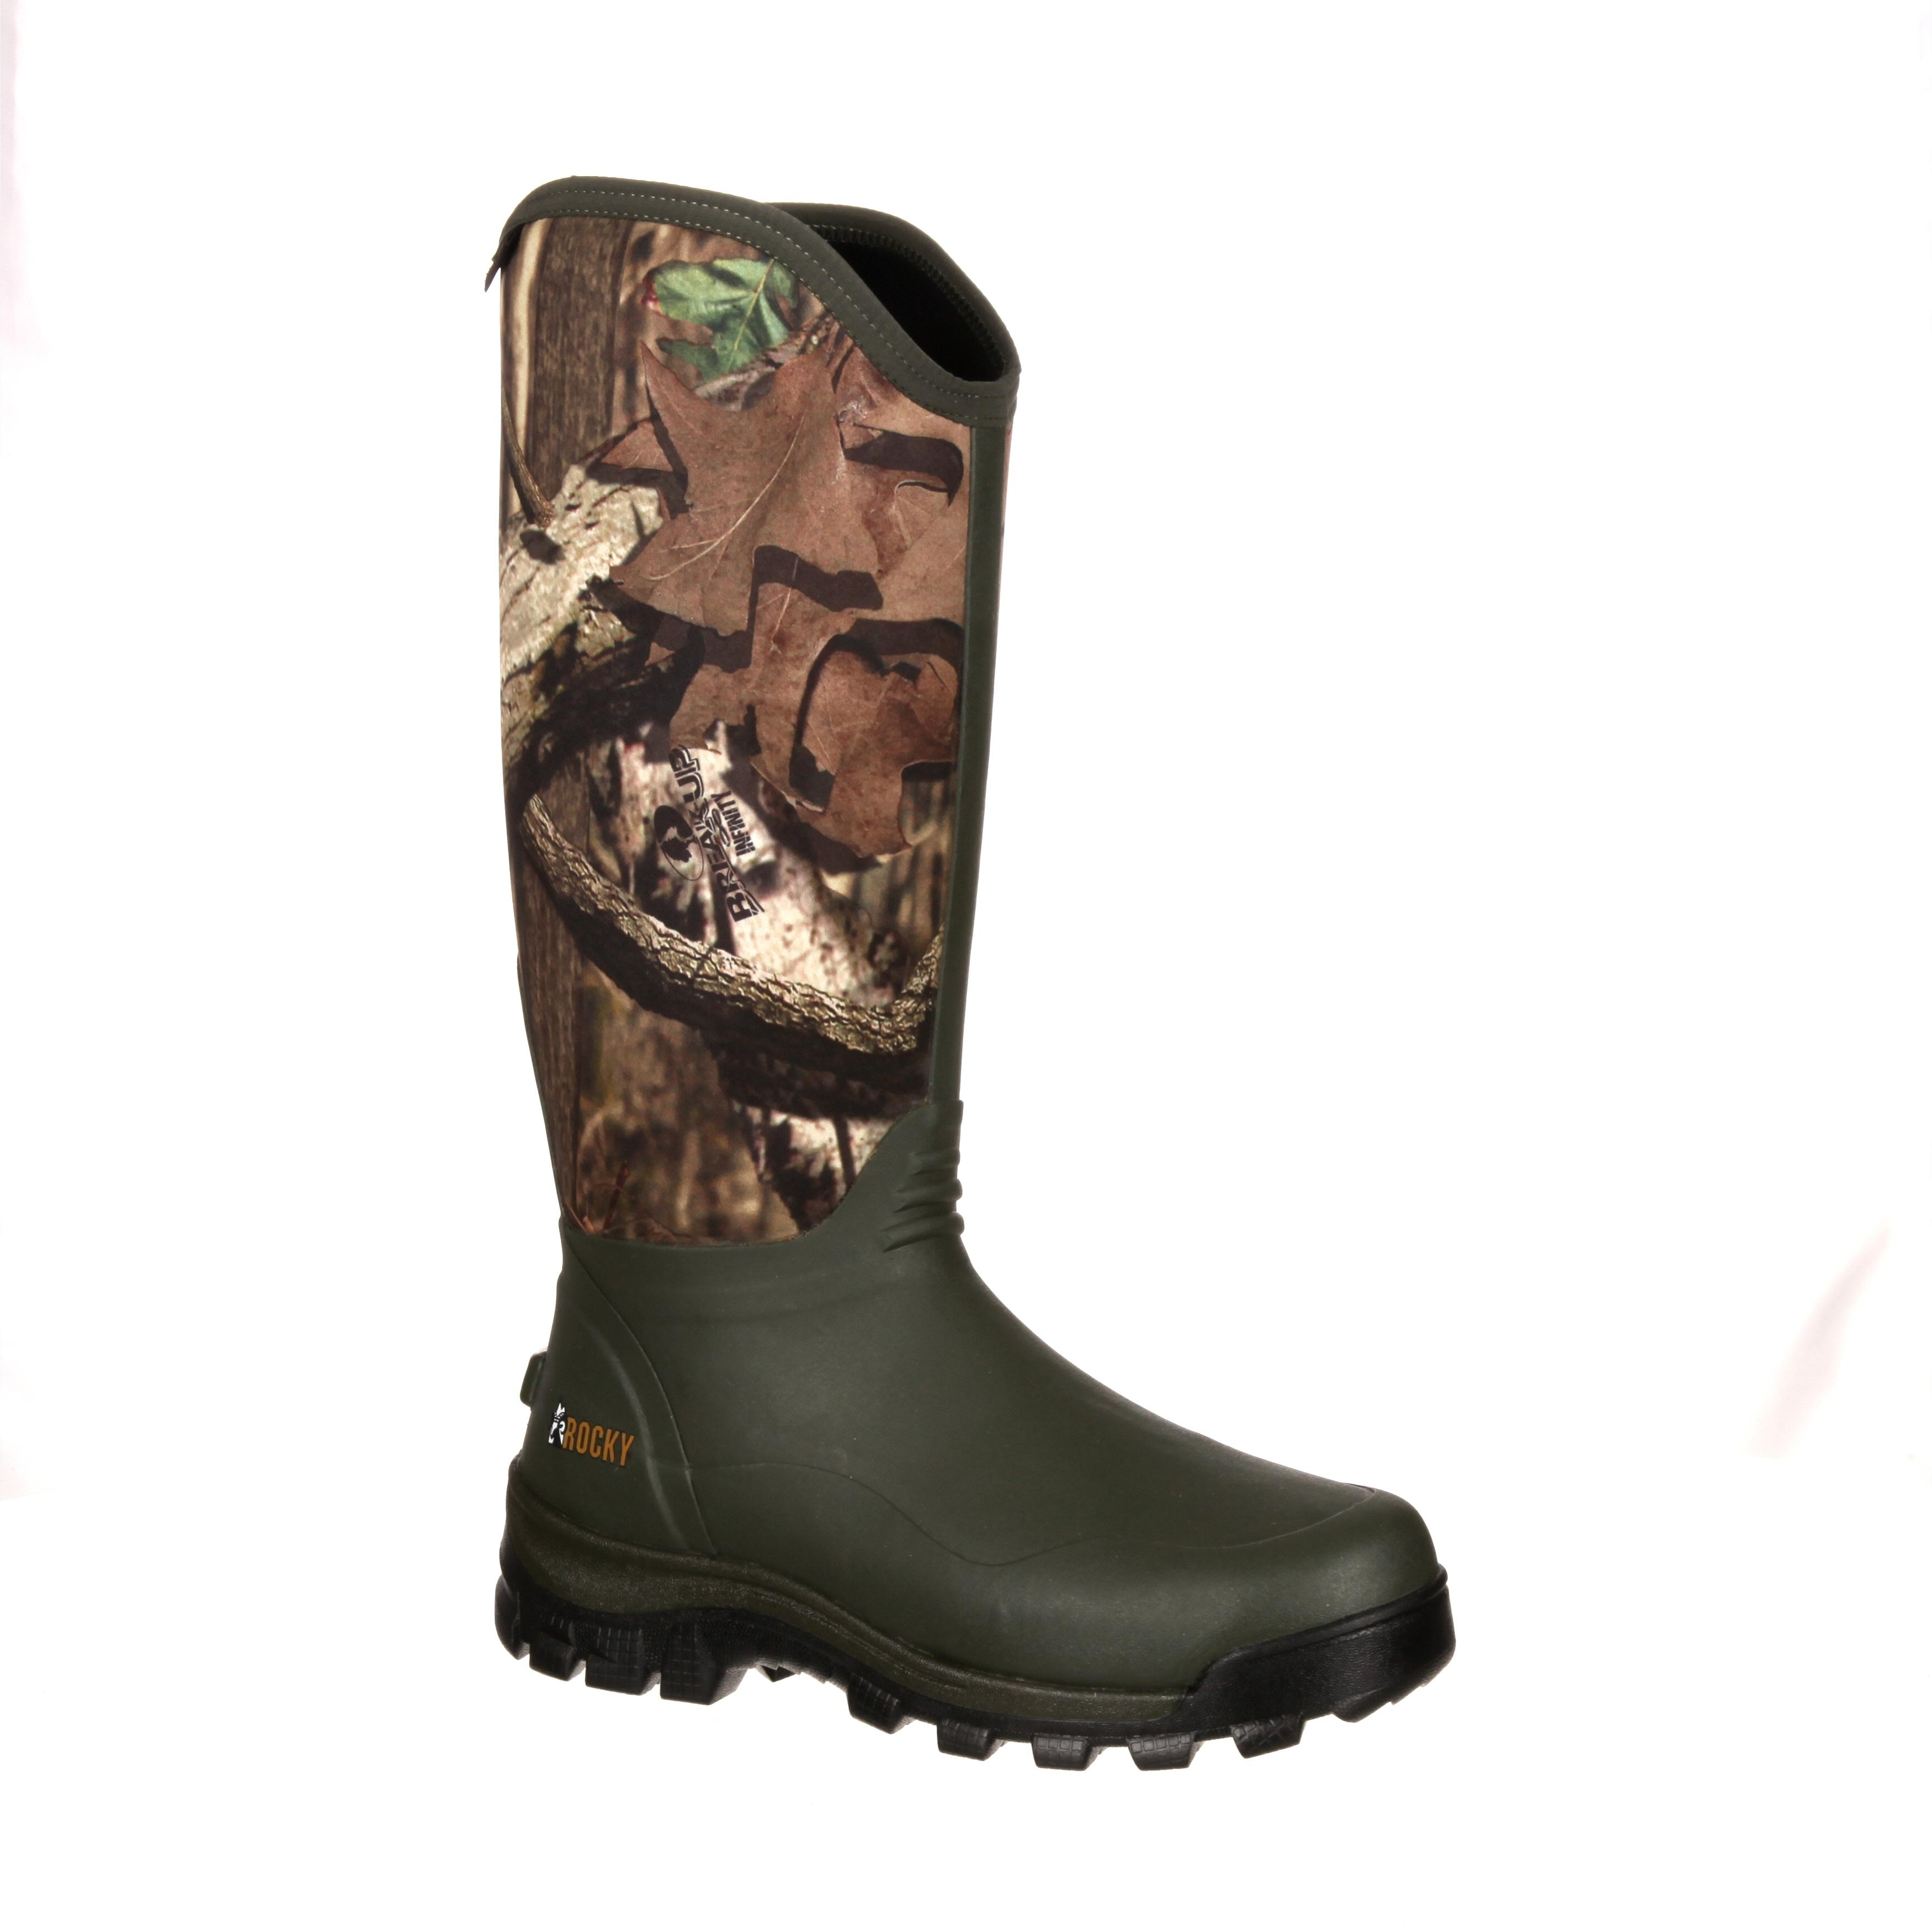 27ae54f67a32e9 Rocky Core Waterproof Camo Outdoor Rubber Boot, #RKYS054